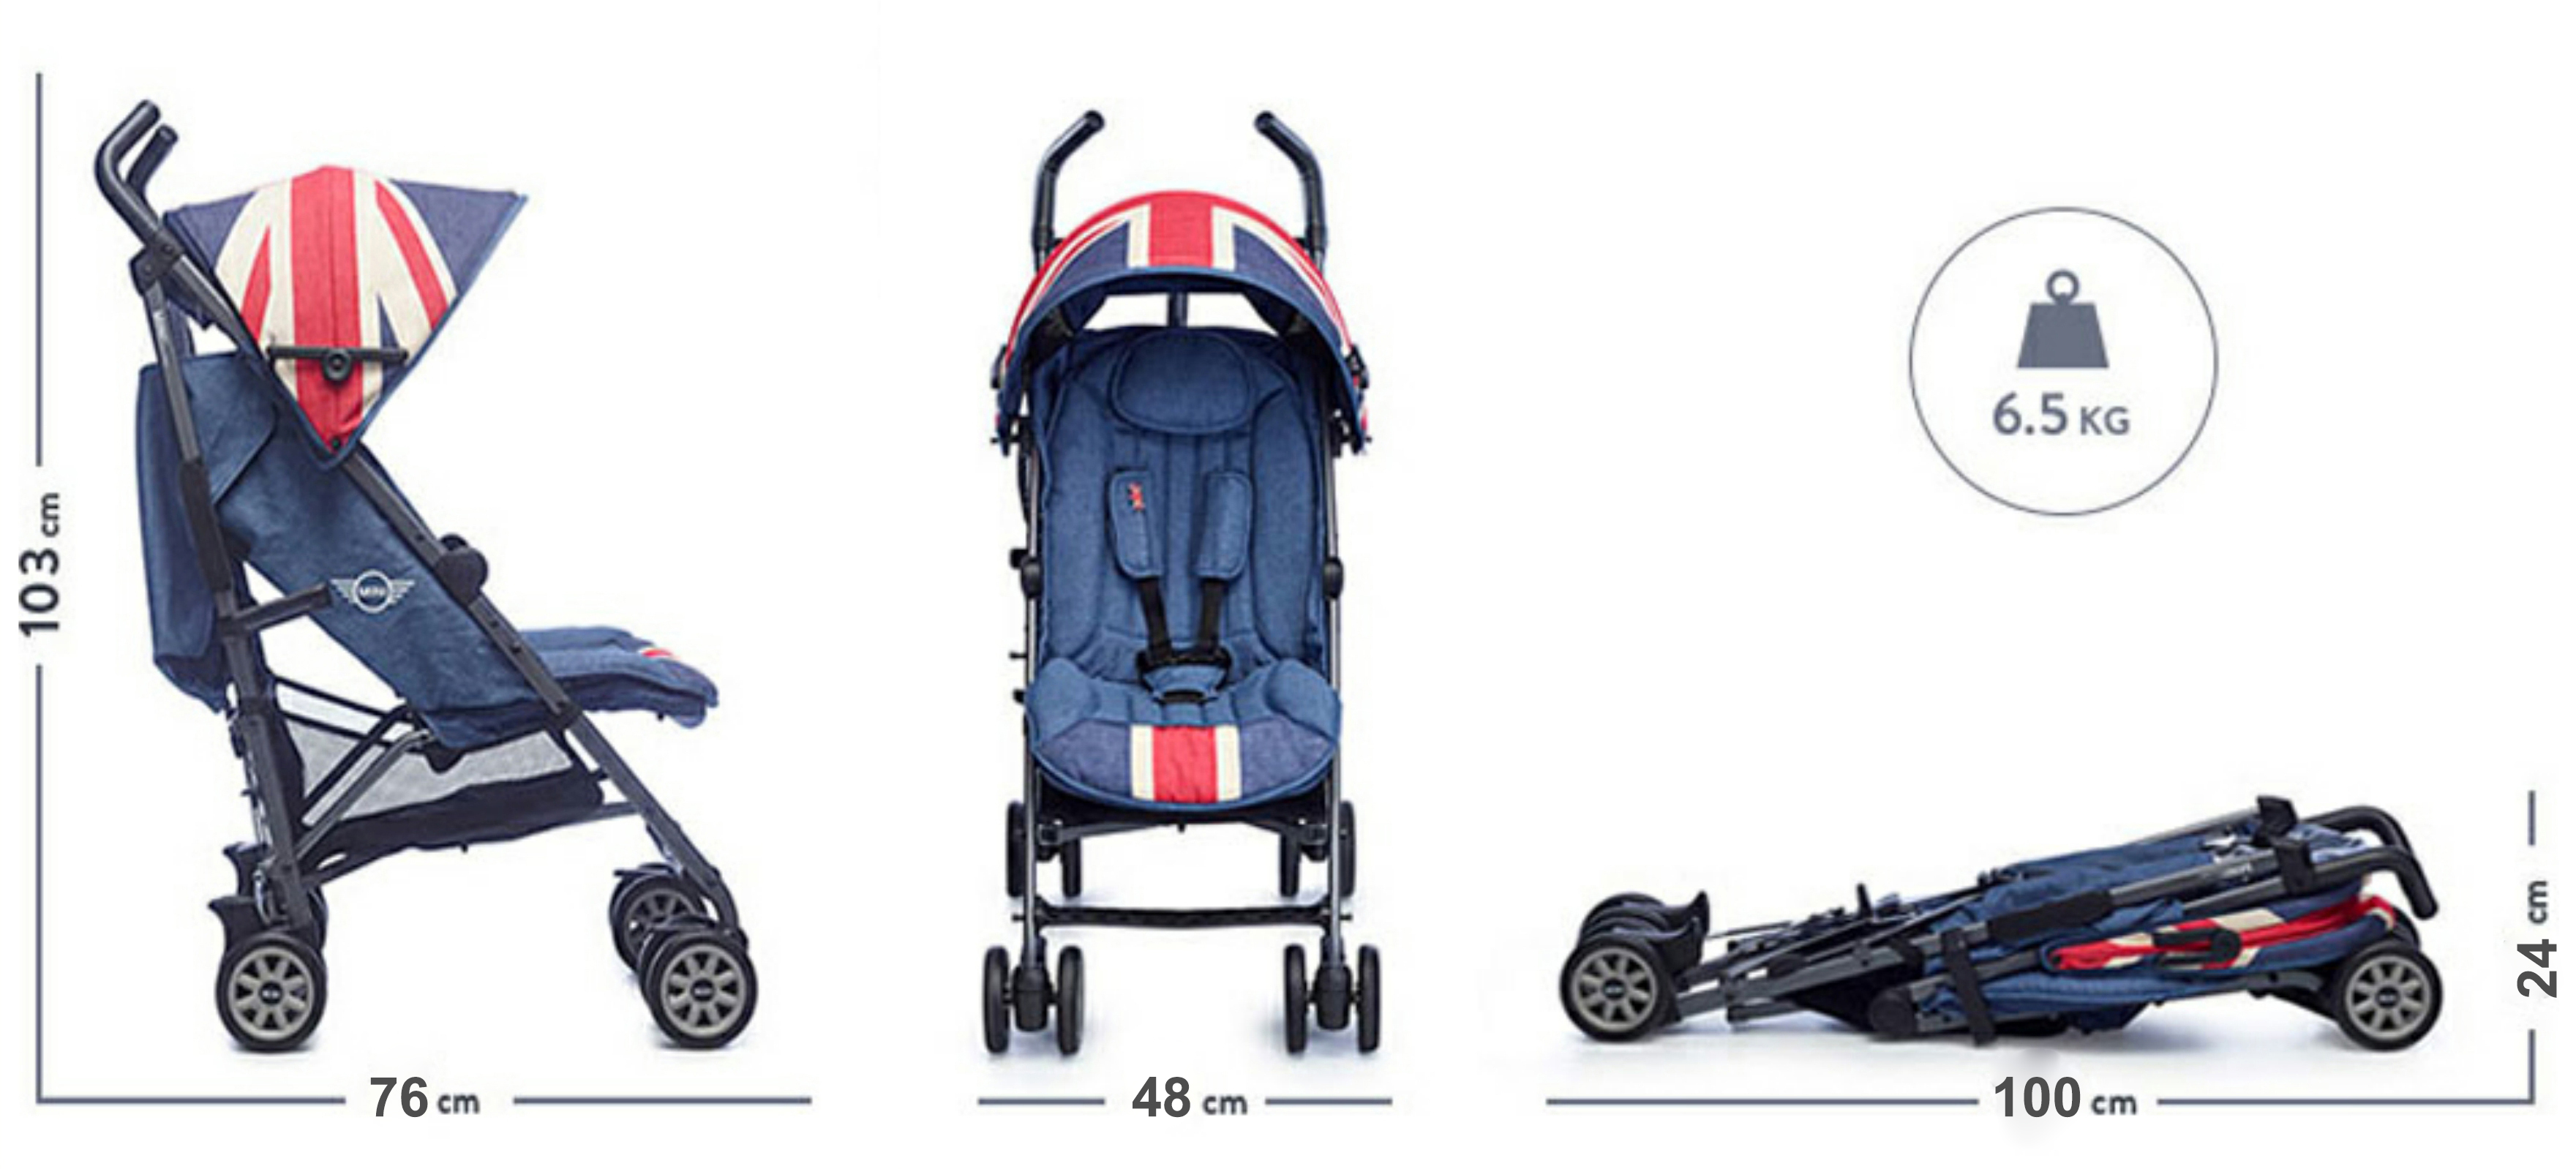 габариты Easywalker Mini Buggy